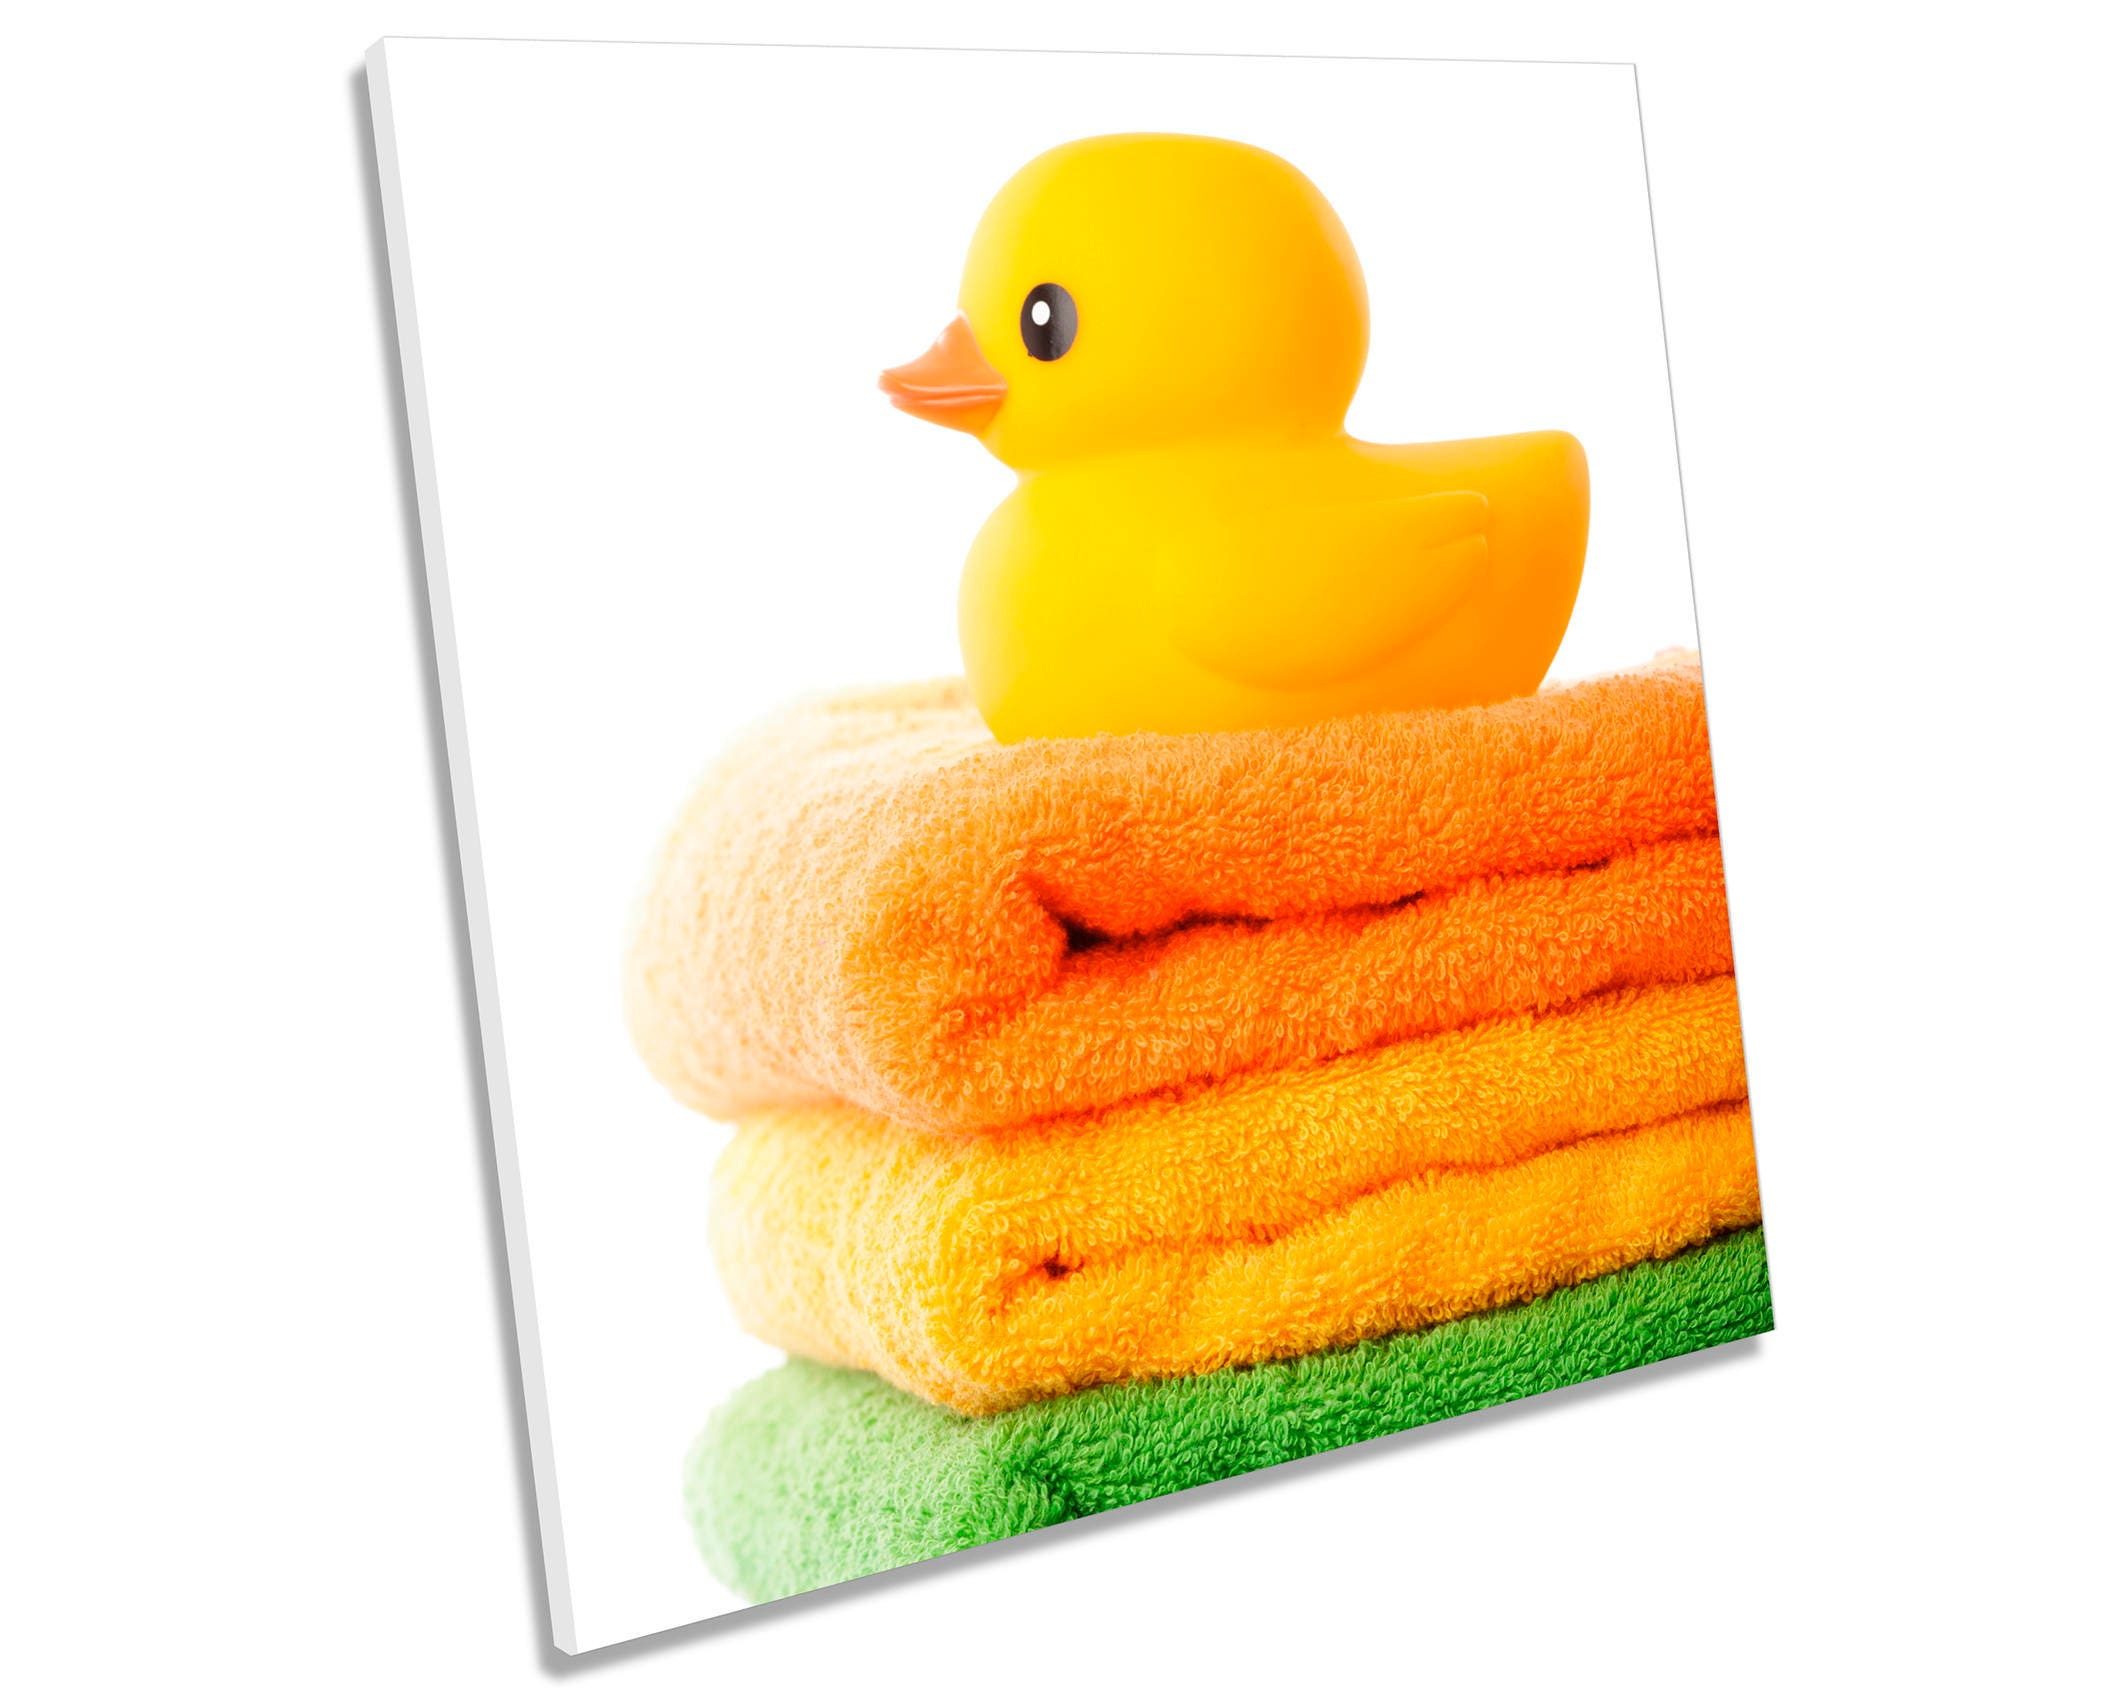 Rubber Duck Towels Bathroom CANVAS WALL ART Square Print